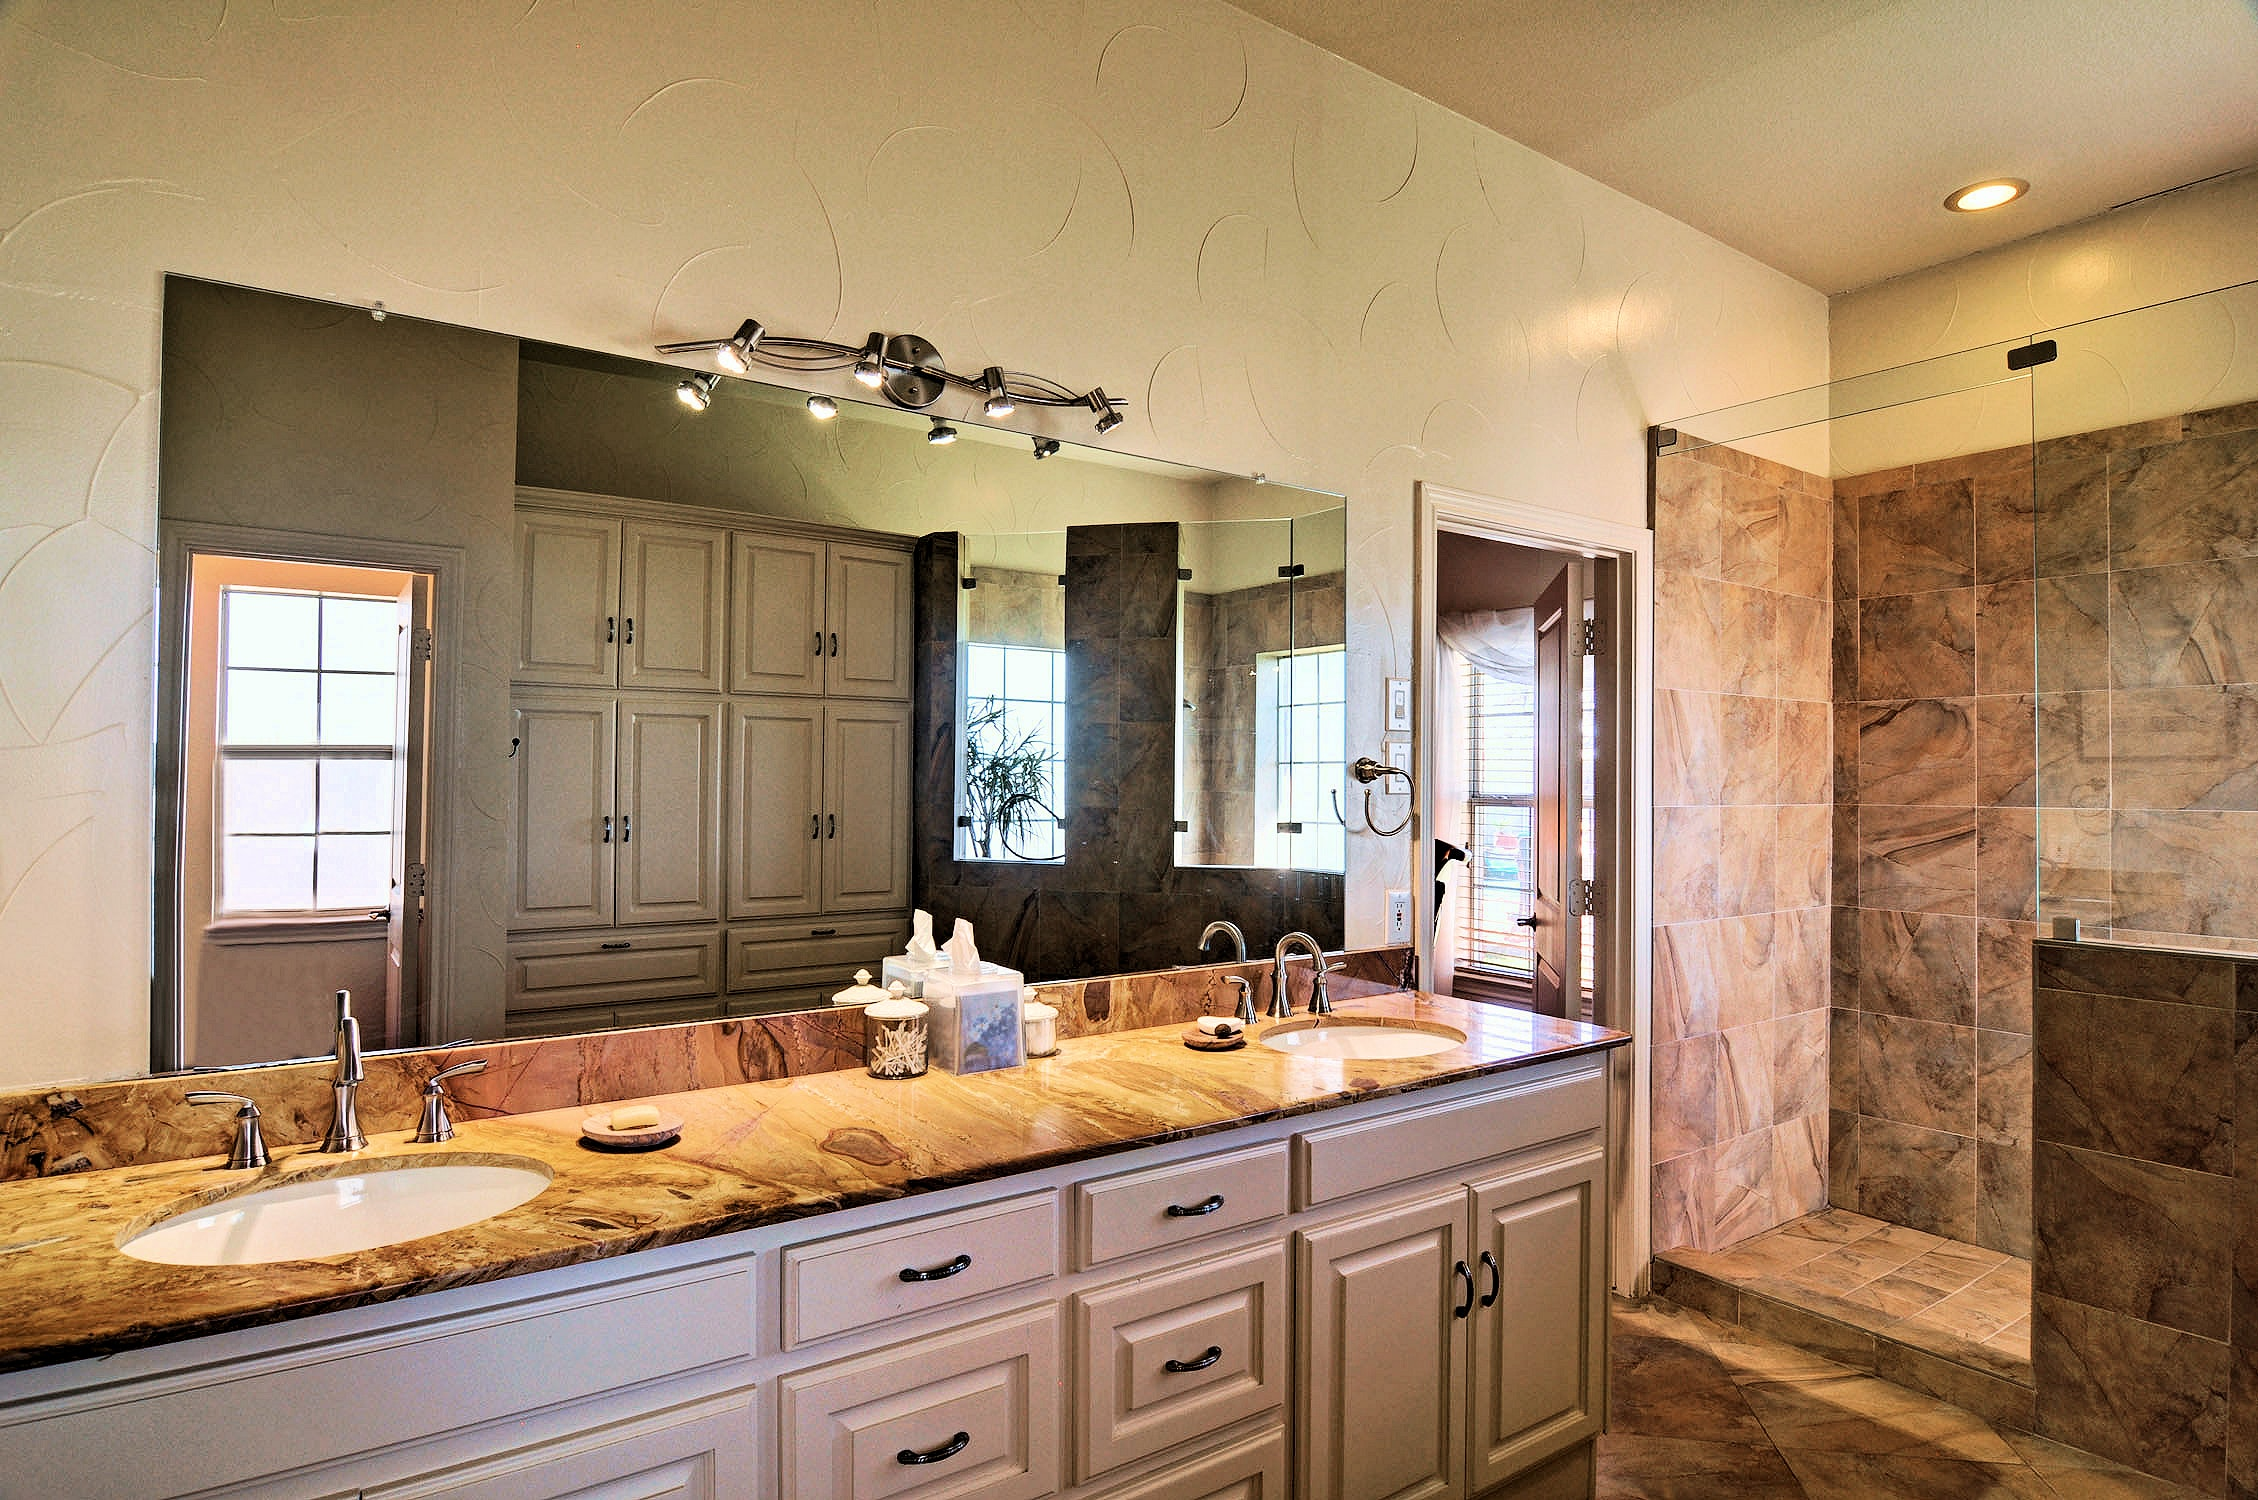 3 Remodeling Mistakes Hurt Resale Value